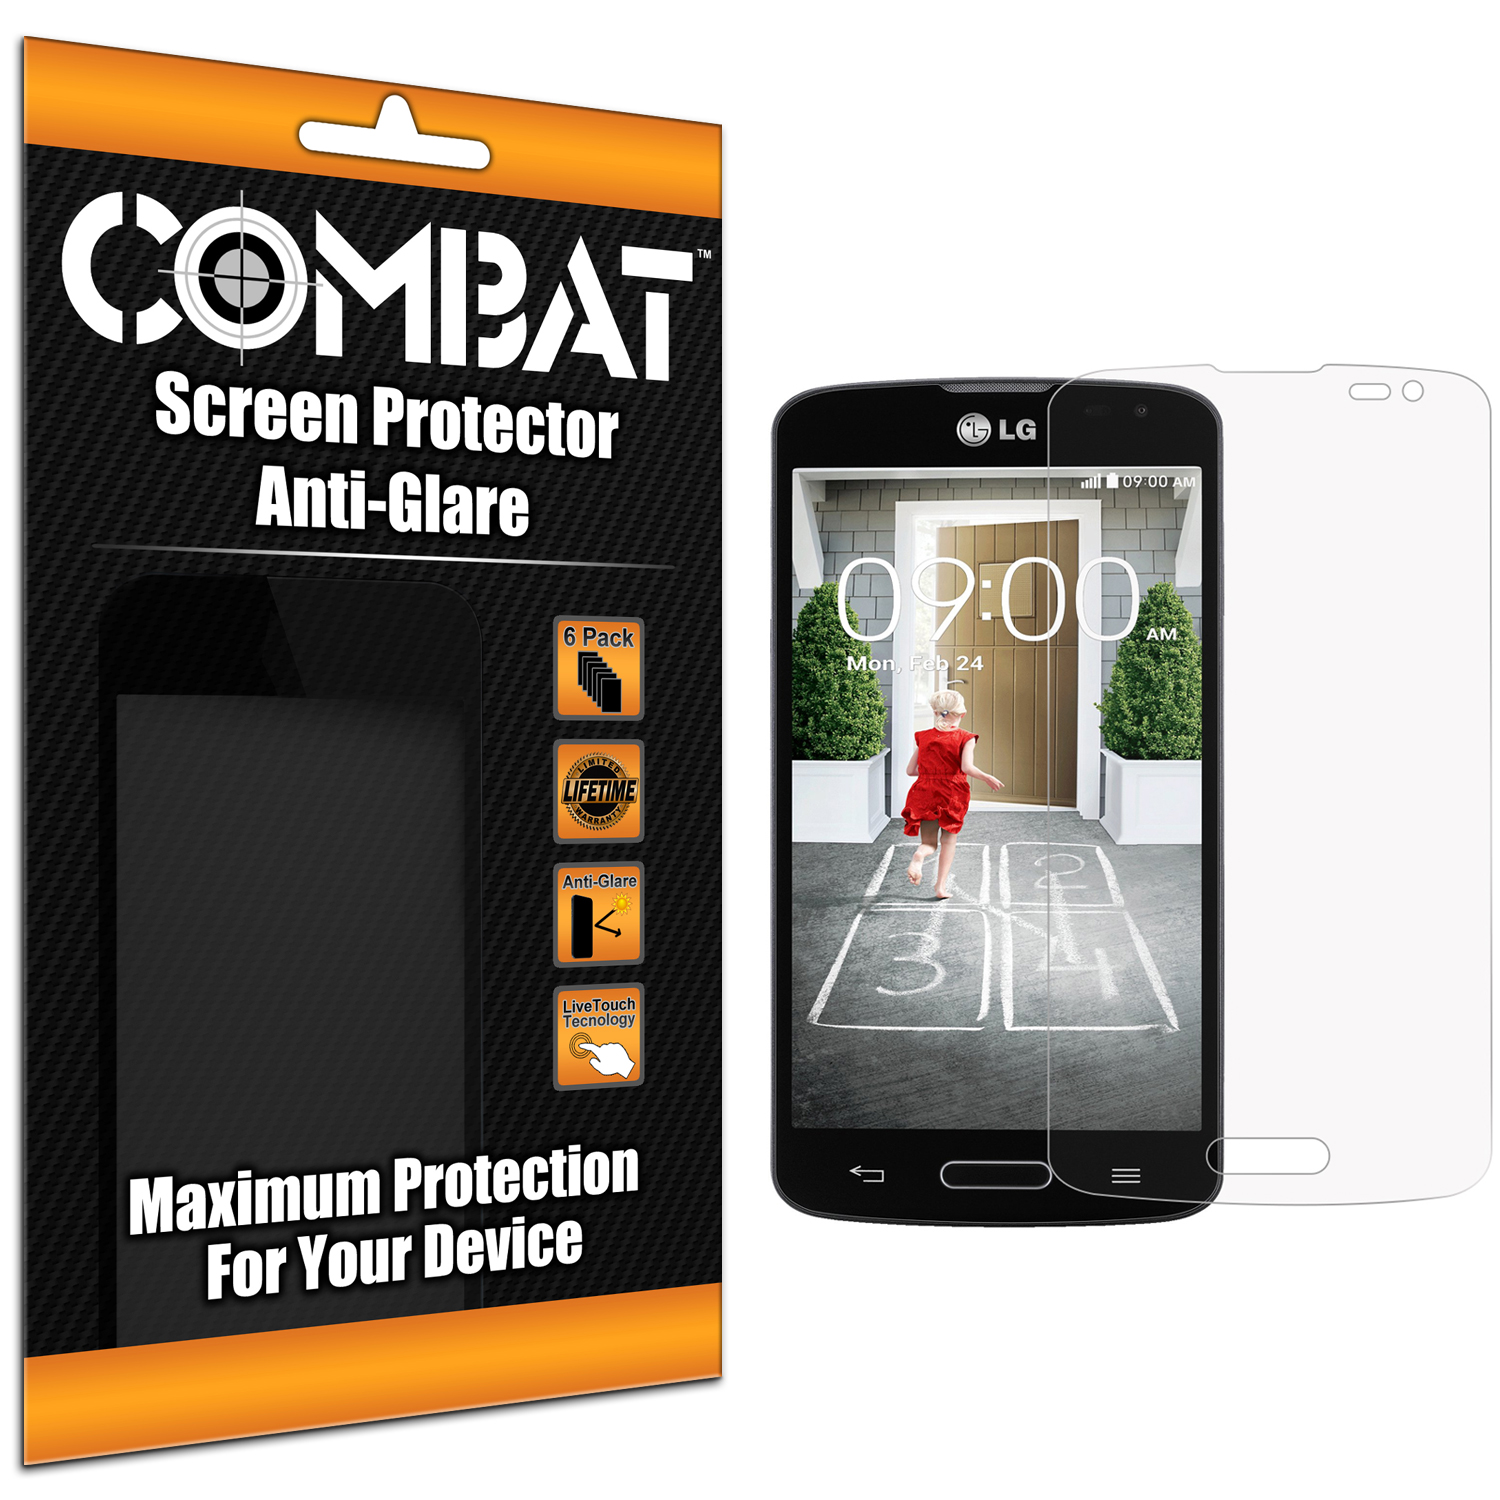 LG Optimus F70 Combat 6 Pack Anti-Glare Matte Screen Protector